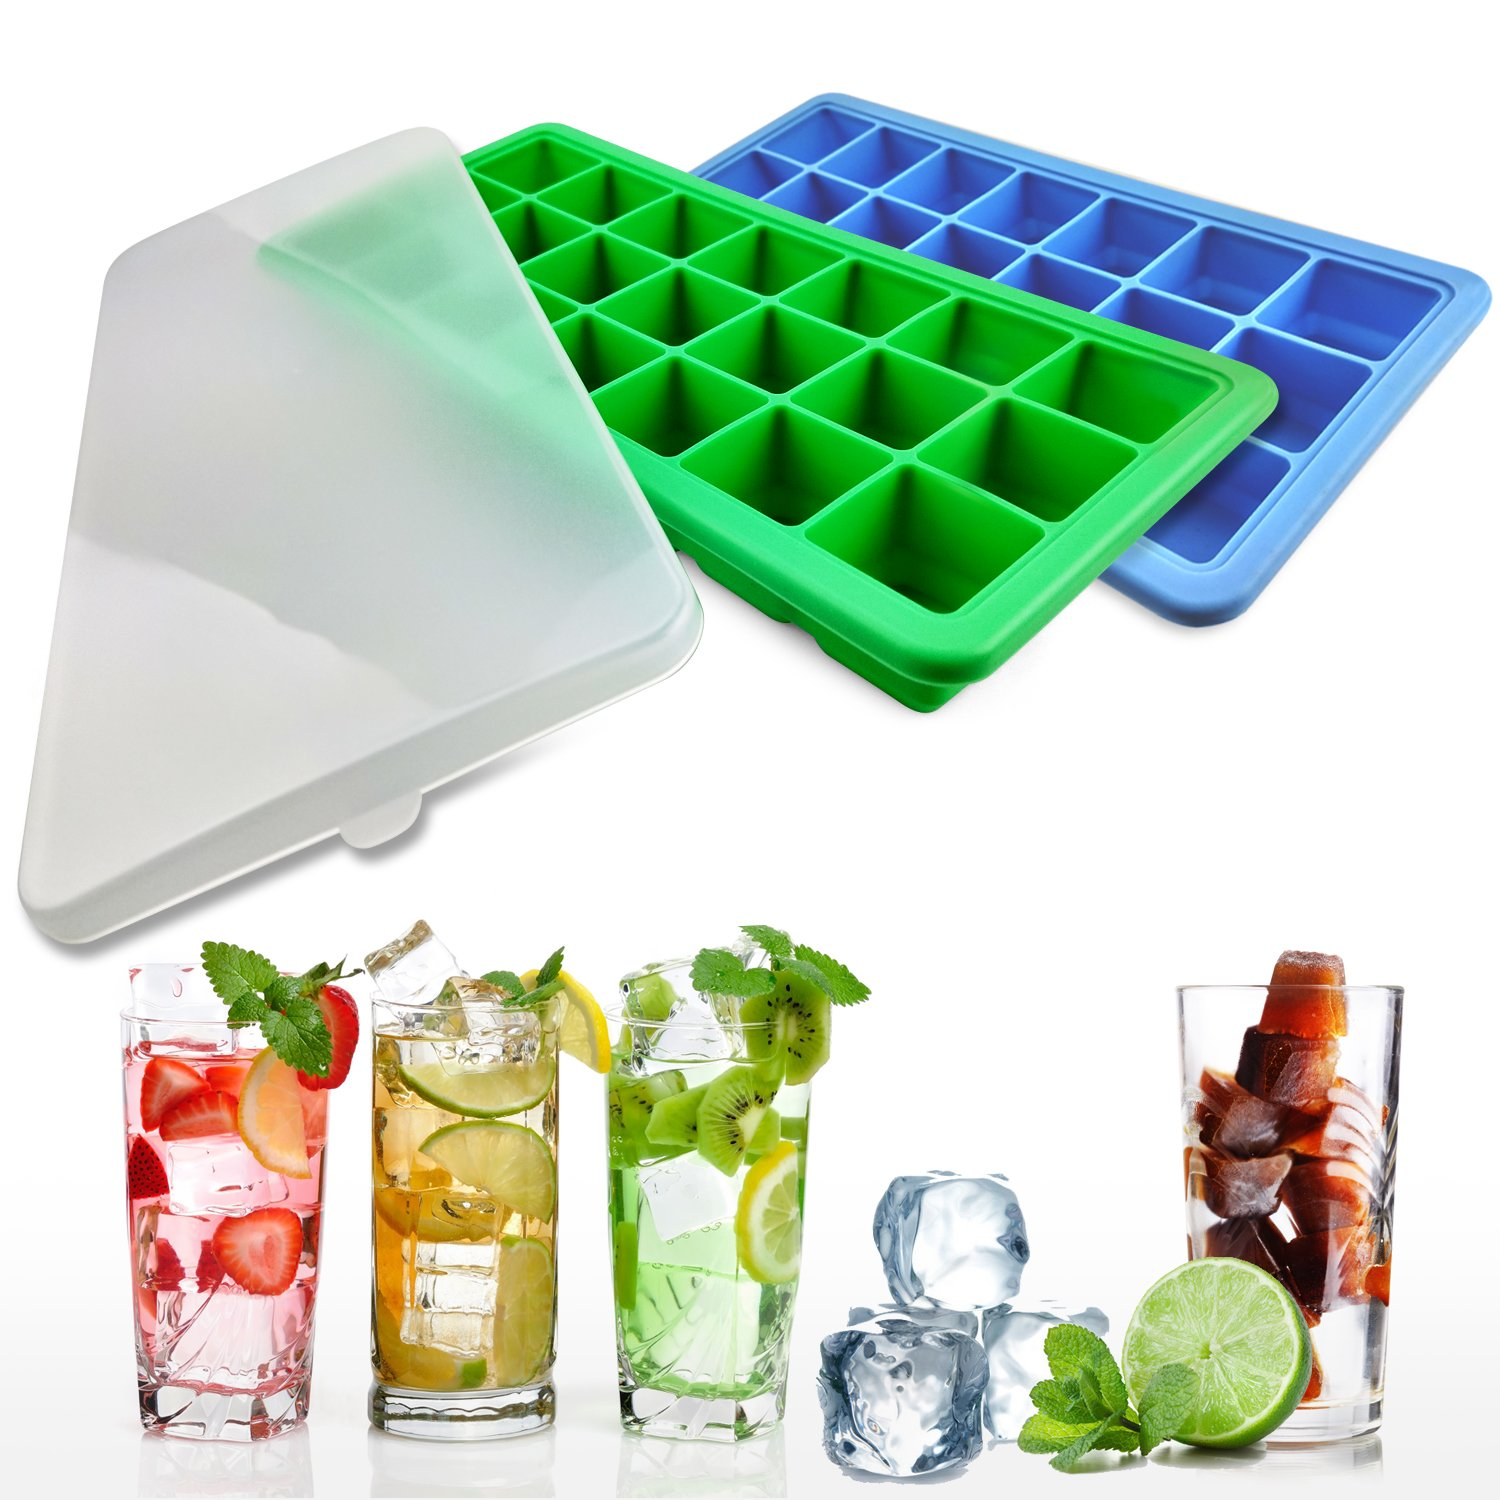 Lifestyle Essentials Silicone Ice Cube Trays with Lids - 2 Ice Tray with BPA Free Plastic Lid for Baby Food or Cocktail - 42 Small Square Ice Molds for Freezer - Stackable and Flexible Twist and Pop for Easy Release